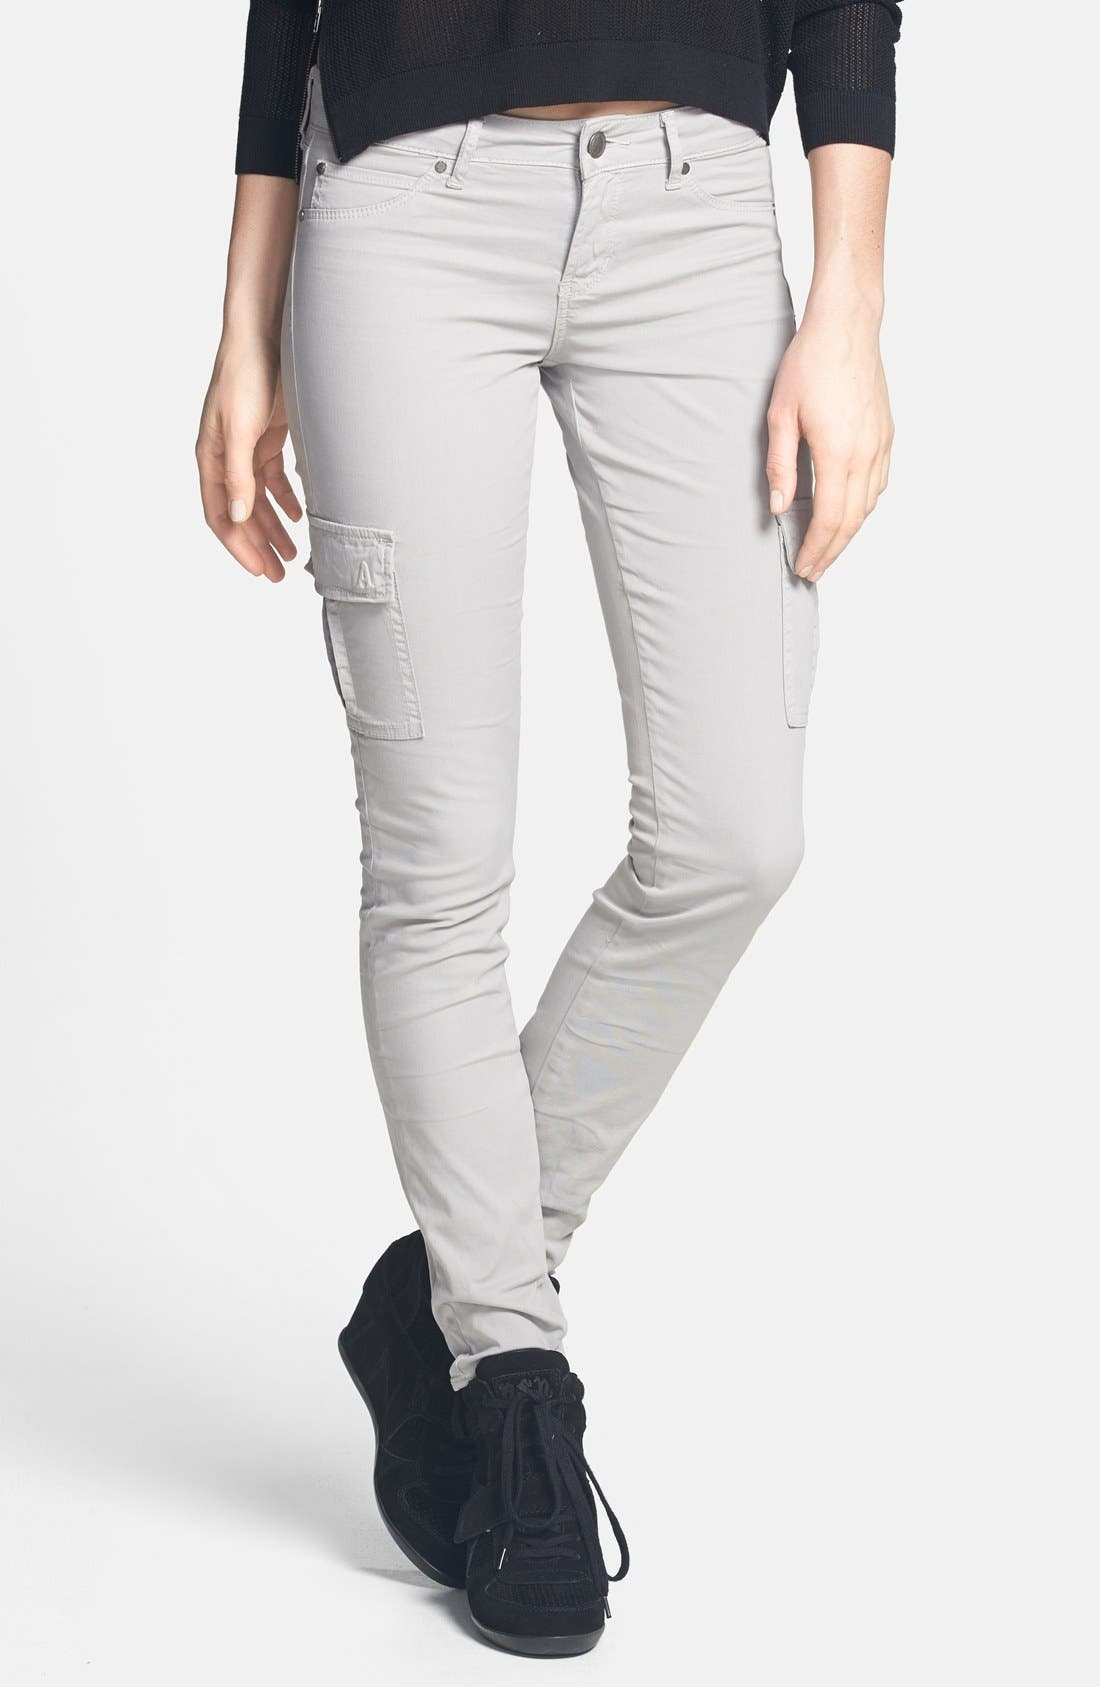 Main Image - Articles of Society 'Mya' Cargo Skinny Jeans (Grey) (Juniors) (Online Only)